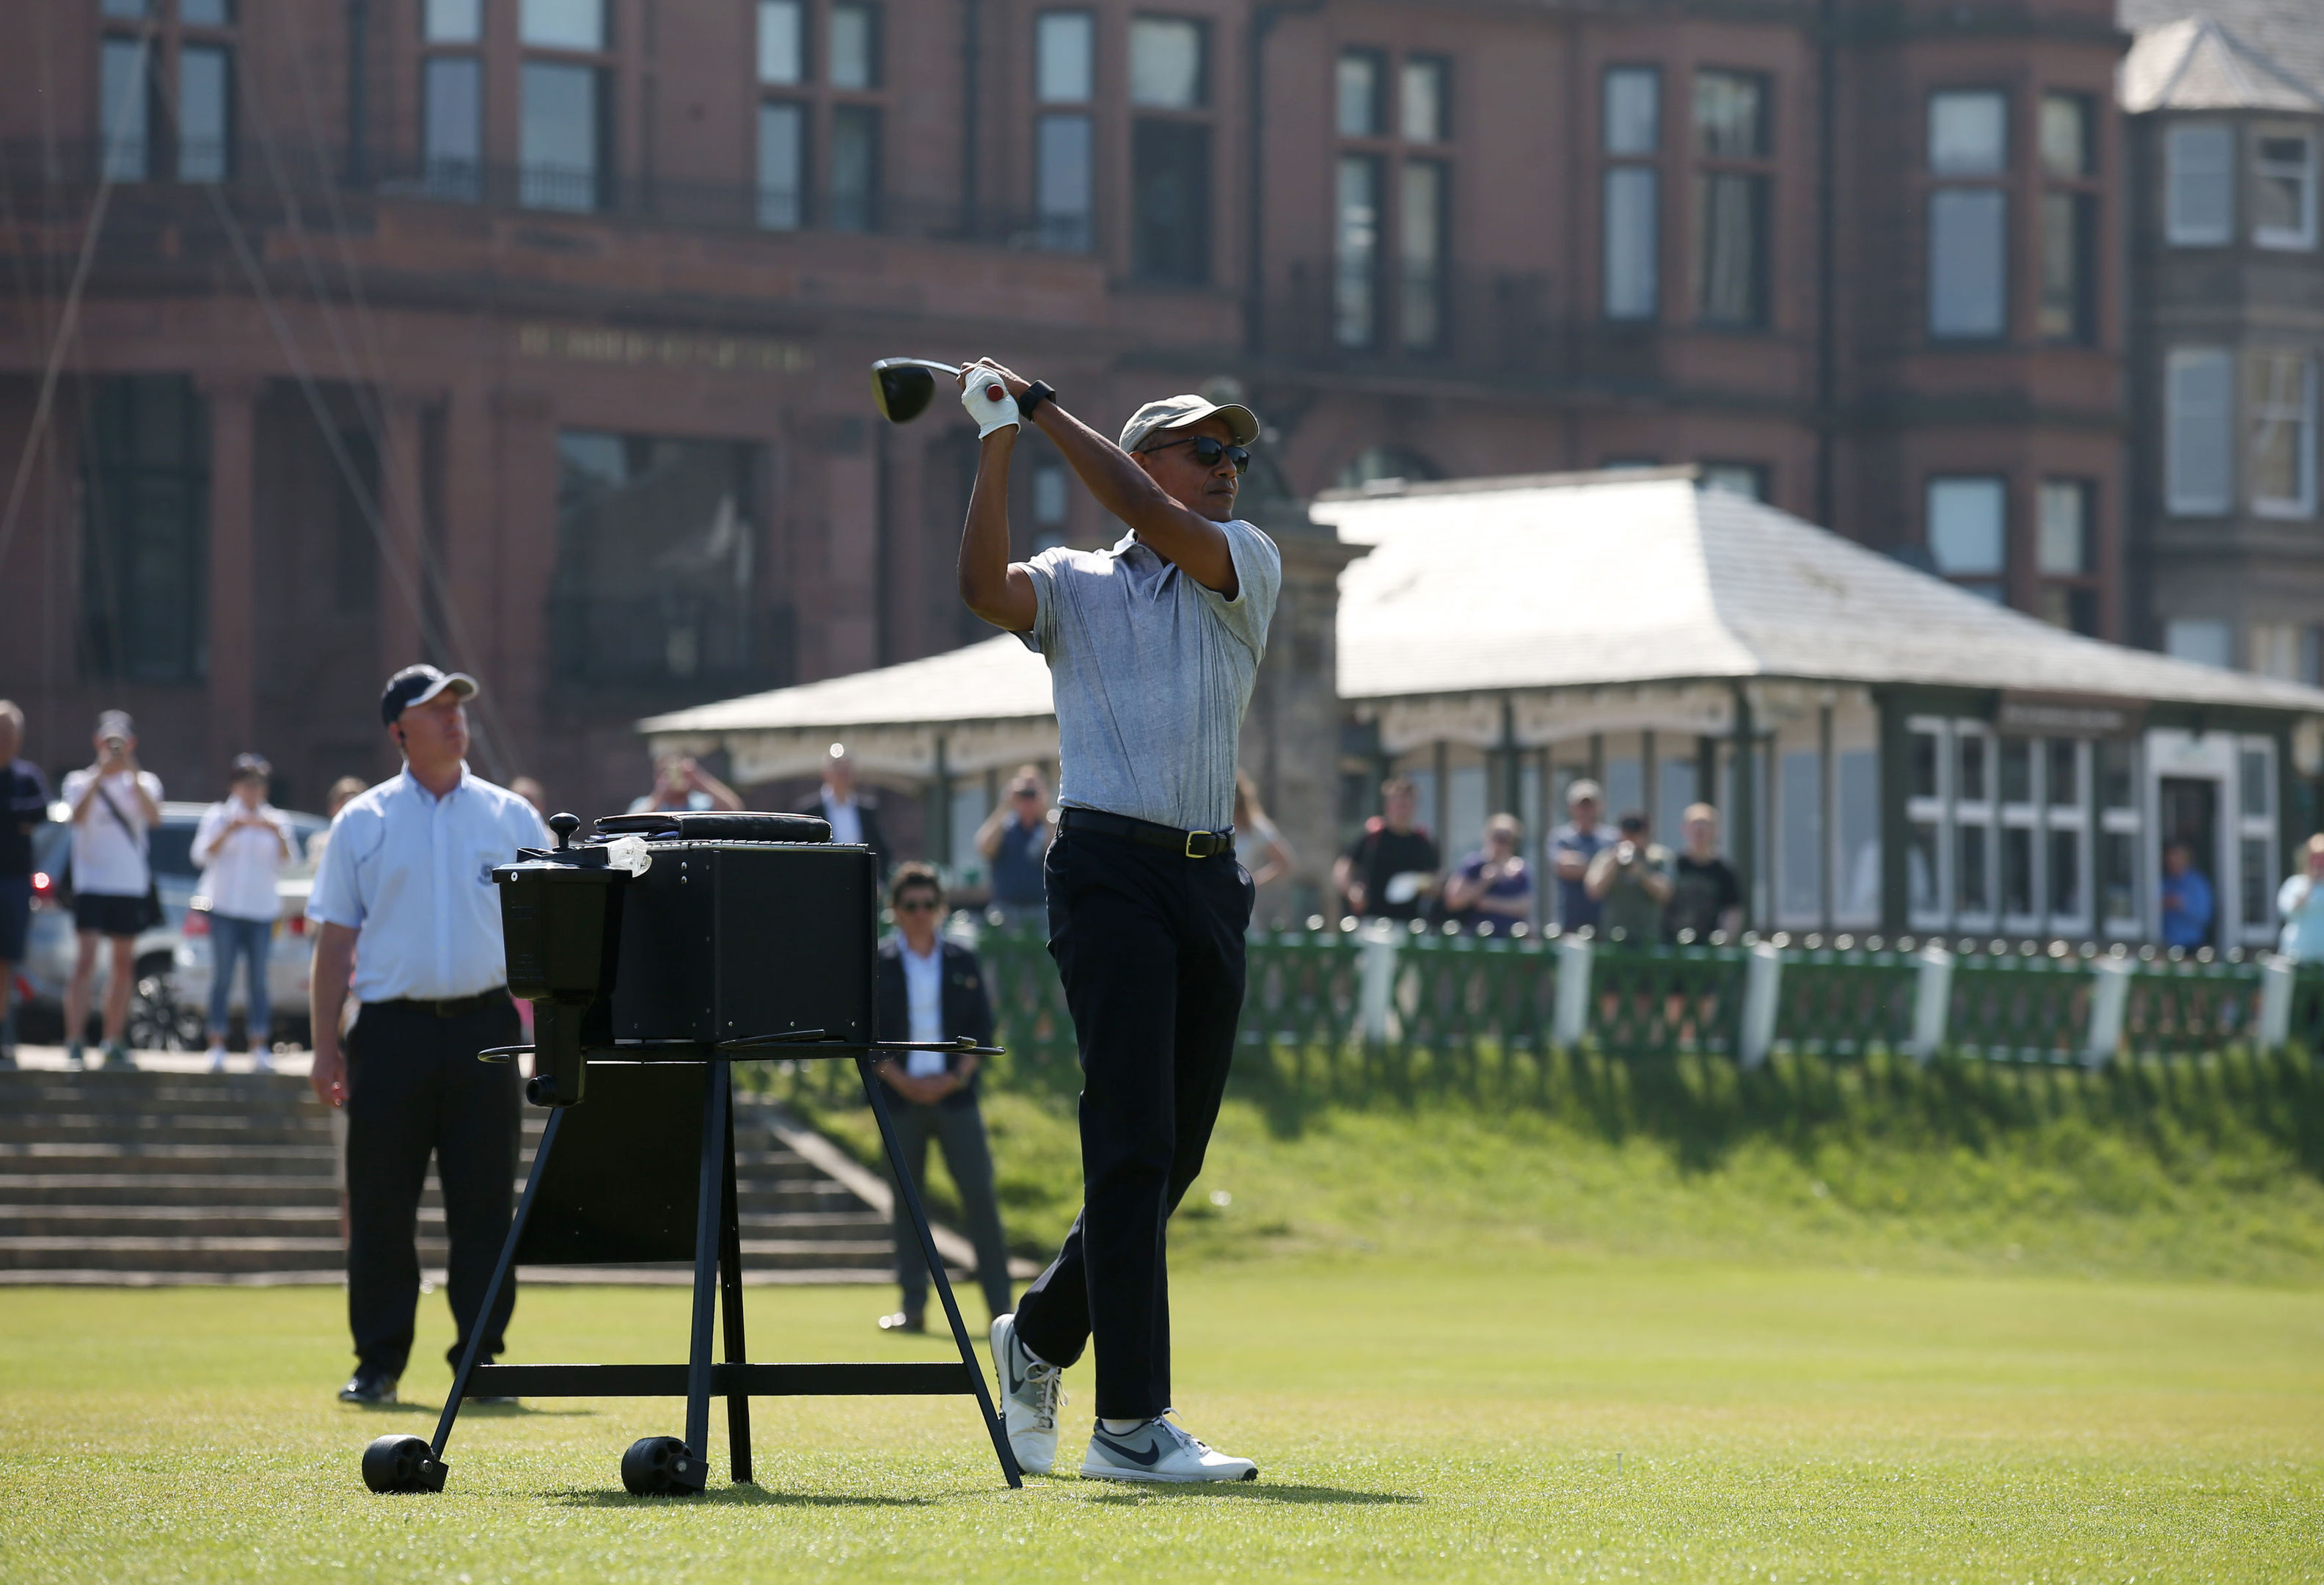 Former US president Barack Obama tees off at the first hole at St Andrews.